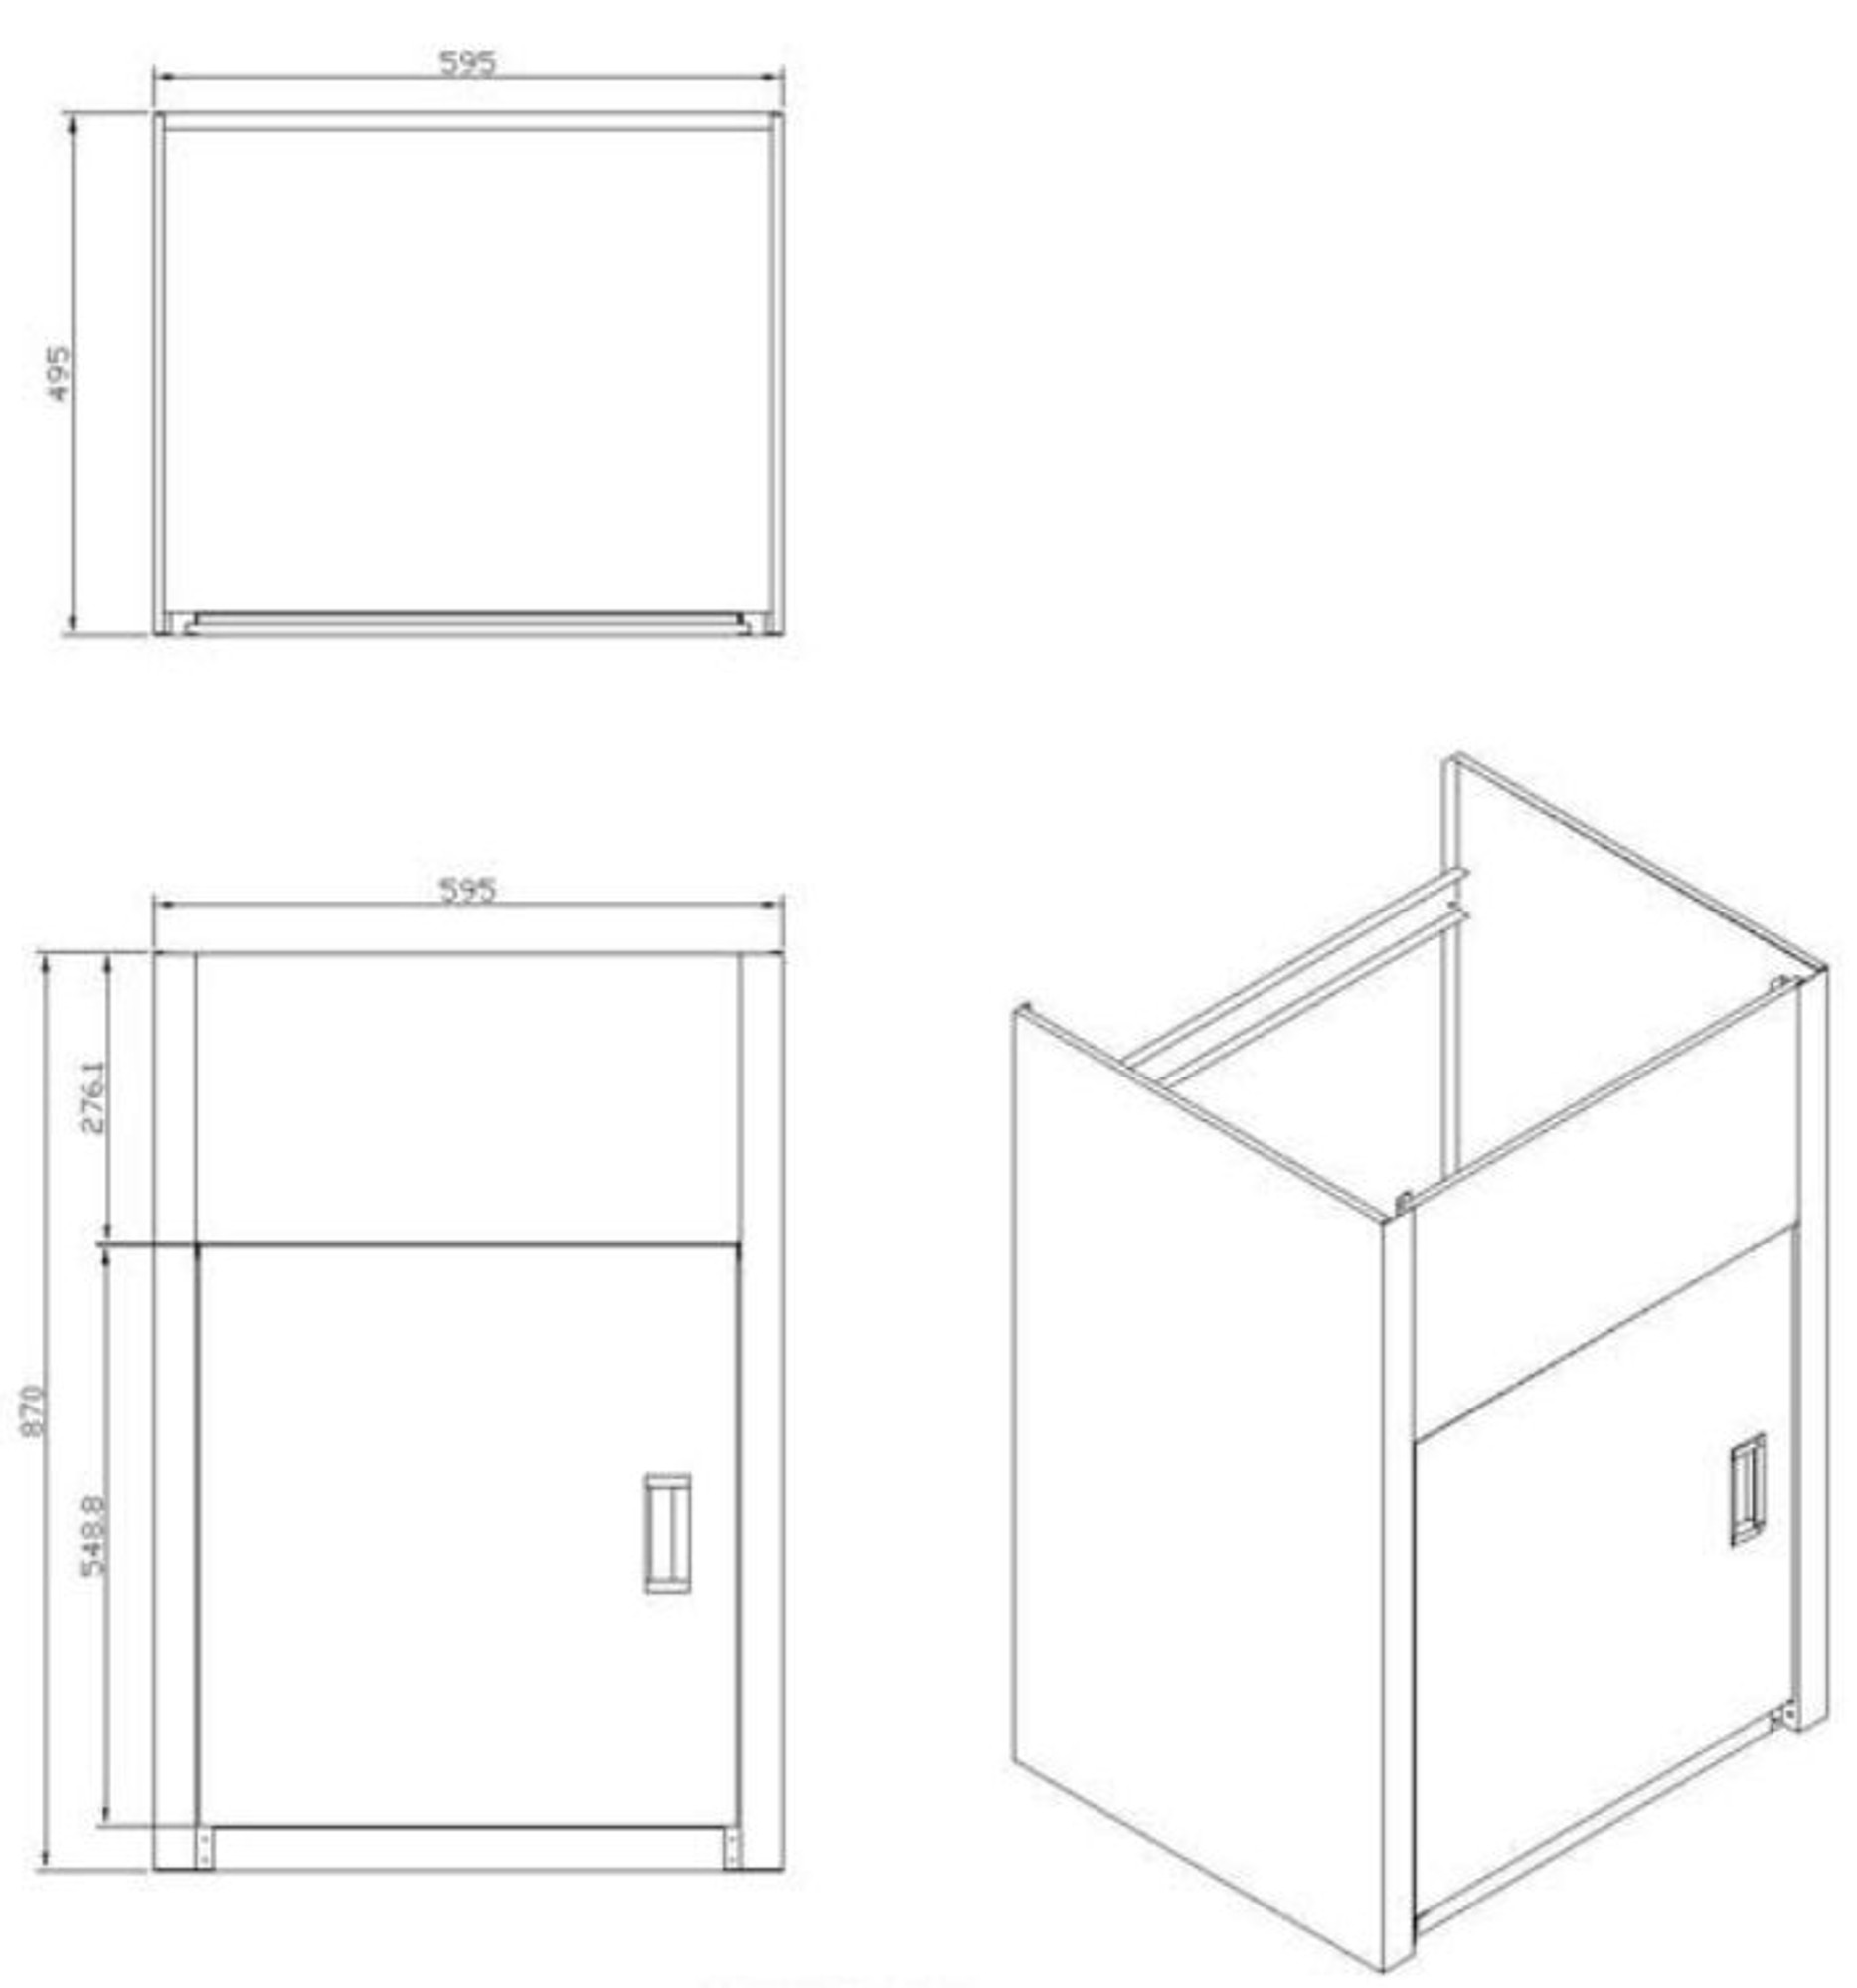 Project 45 Liter Laundry Sink Tub Cabinet (Sink + Cabinet